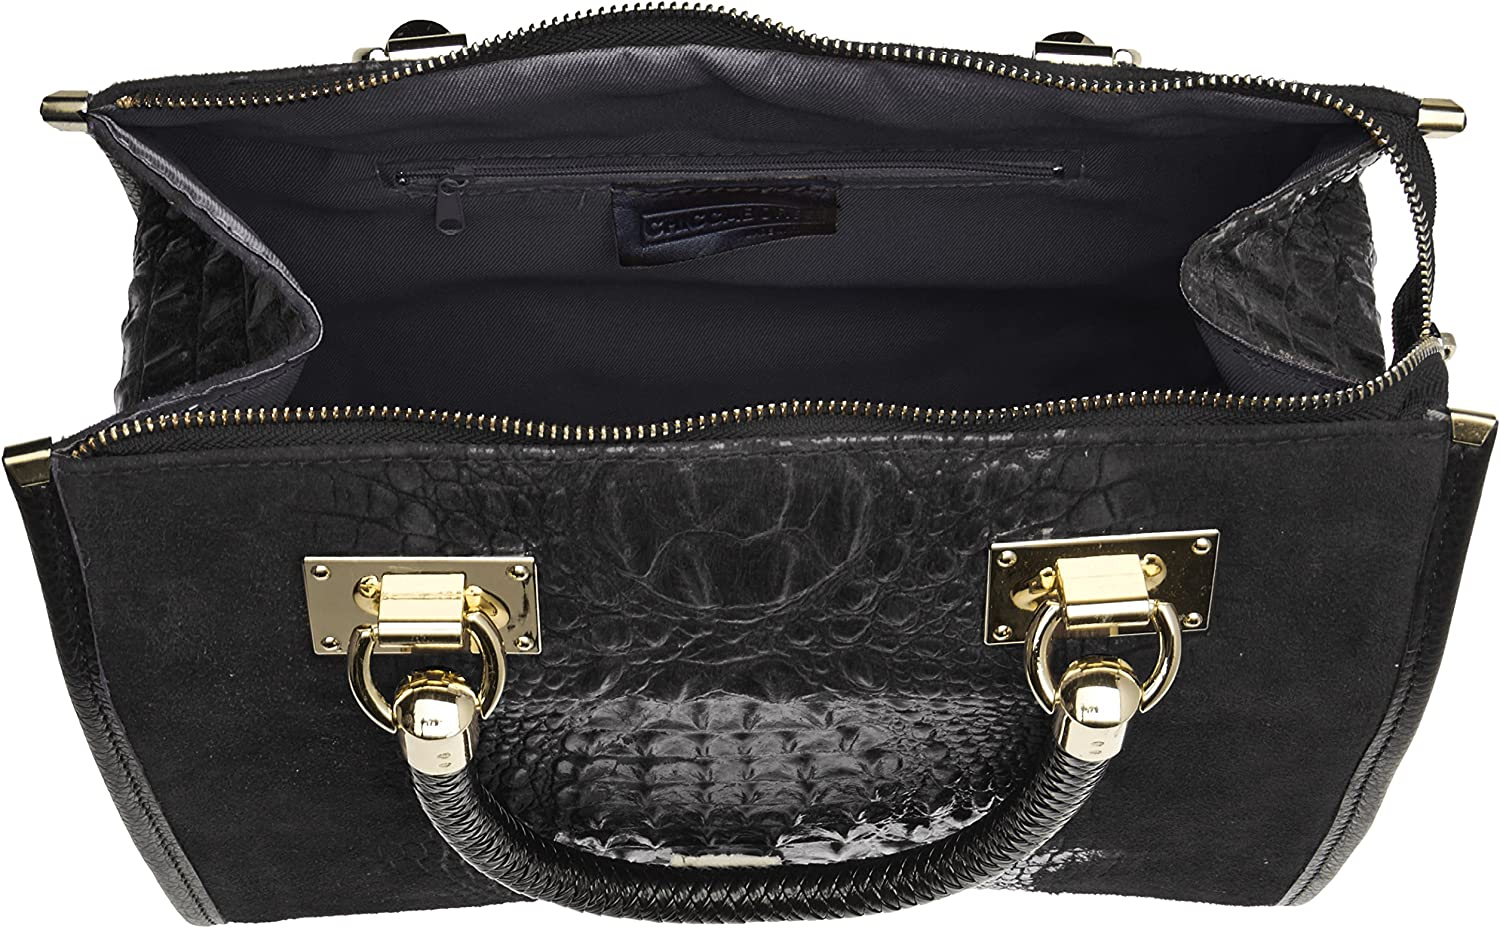 Chicca Borse Women/'s 80044 Bowling Bag